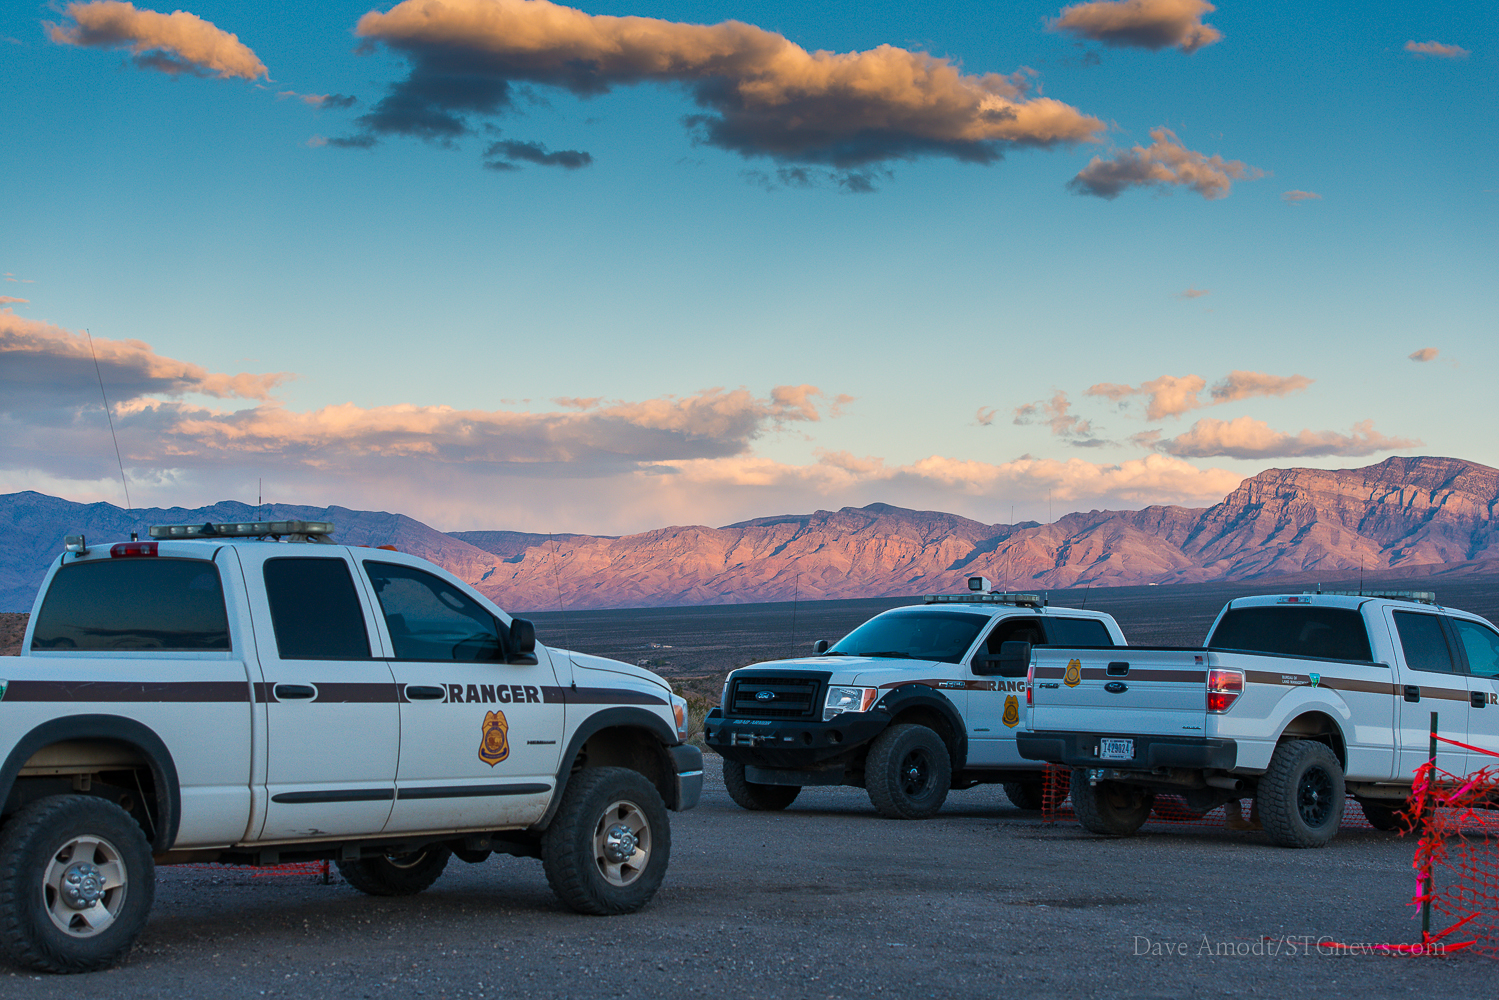 Trucks belonging to the Bureau of Land Management, a federal agency Cliven Bundy views as unconstitutional and flexing authority he refuses to recognize, at the First Amendment zone created in Bunkerville, Clark County, Nev., April 1, 2014 | Photo by Dave Amodt, St. George News